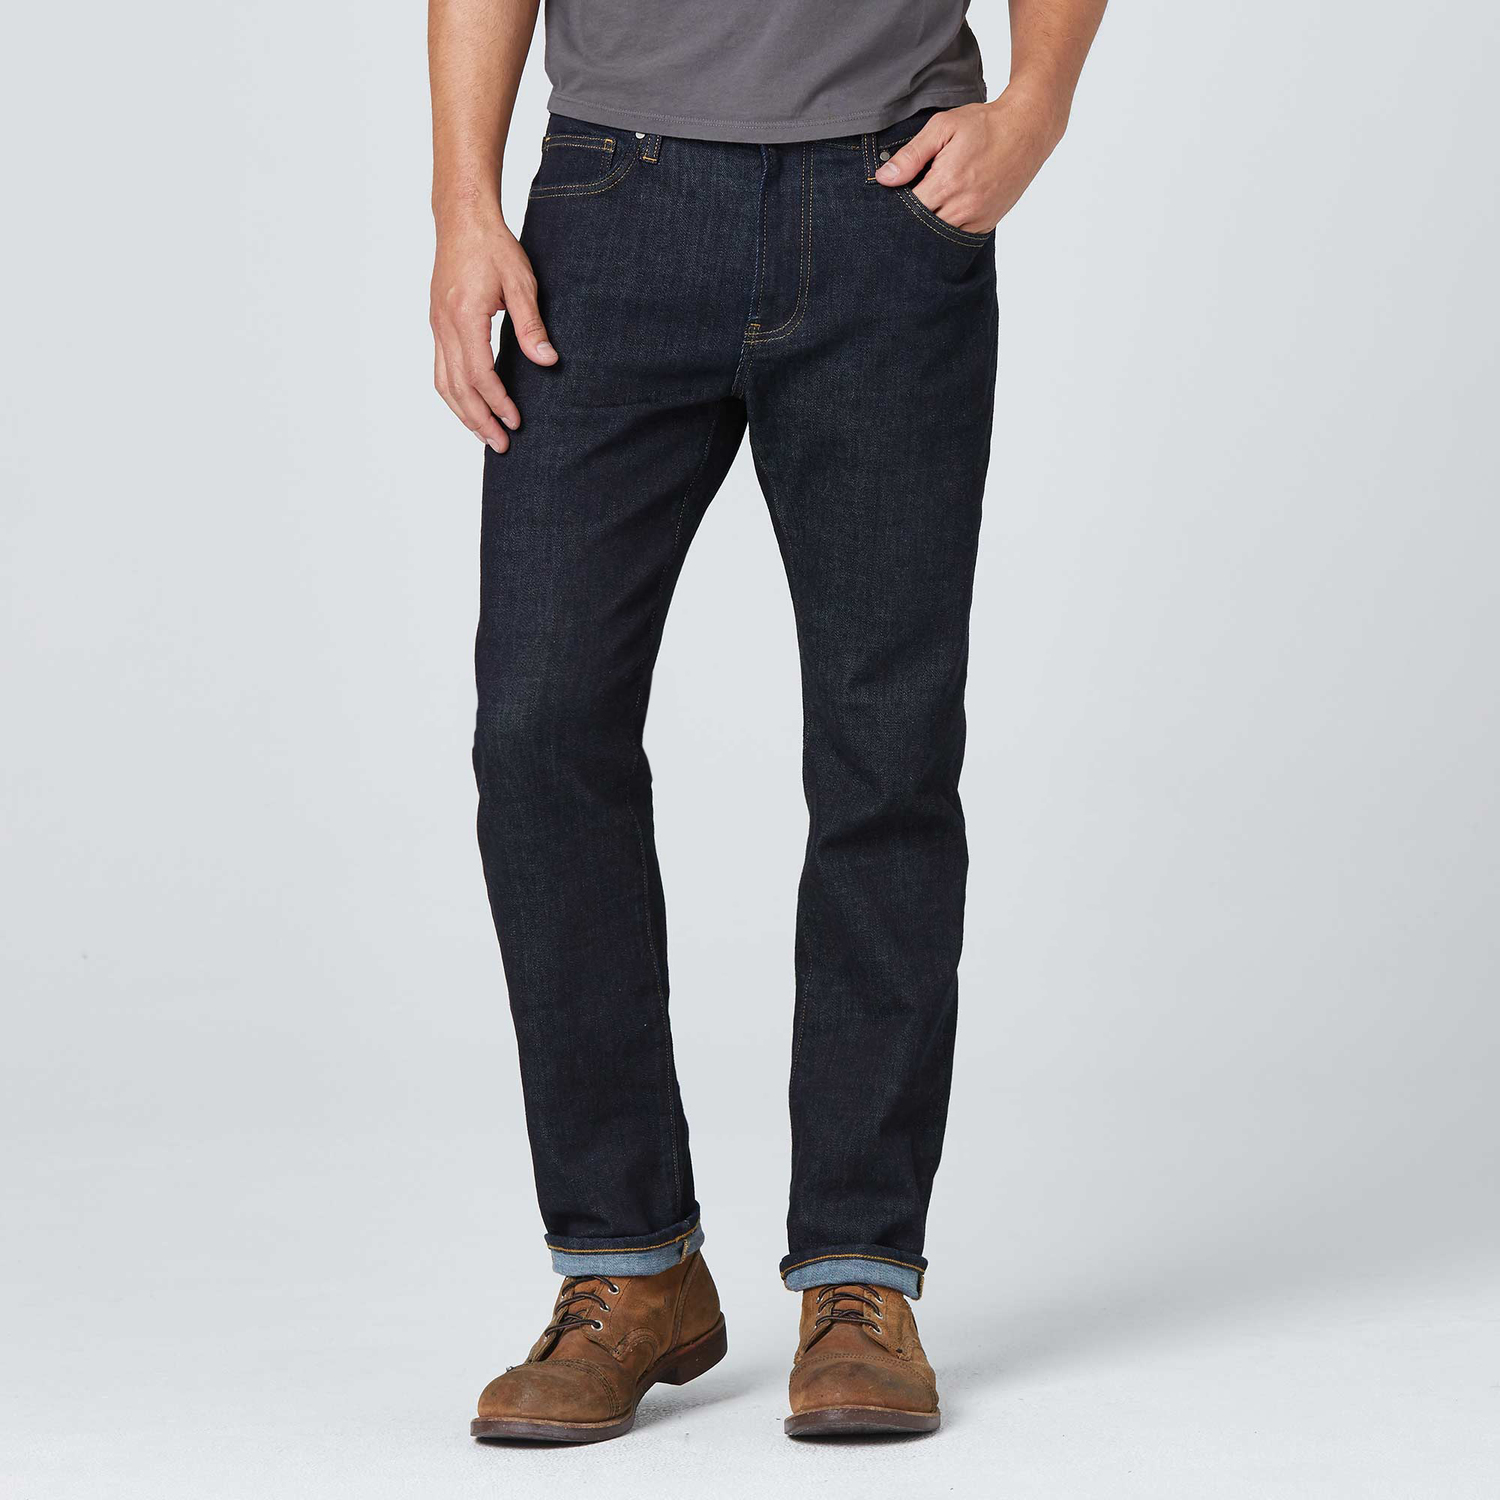 Mens Slim Jeans In Dark Wash Resin Timber Stitch by Dstld